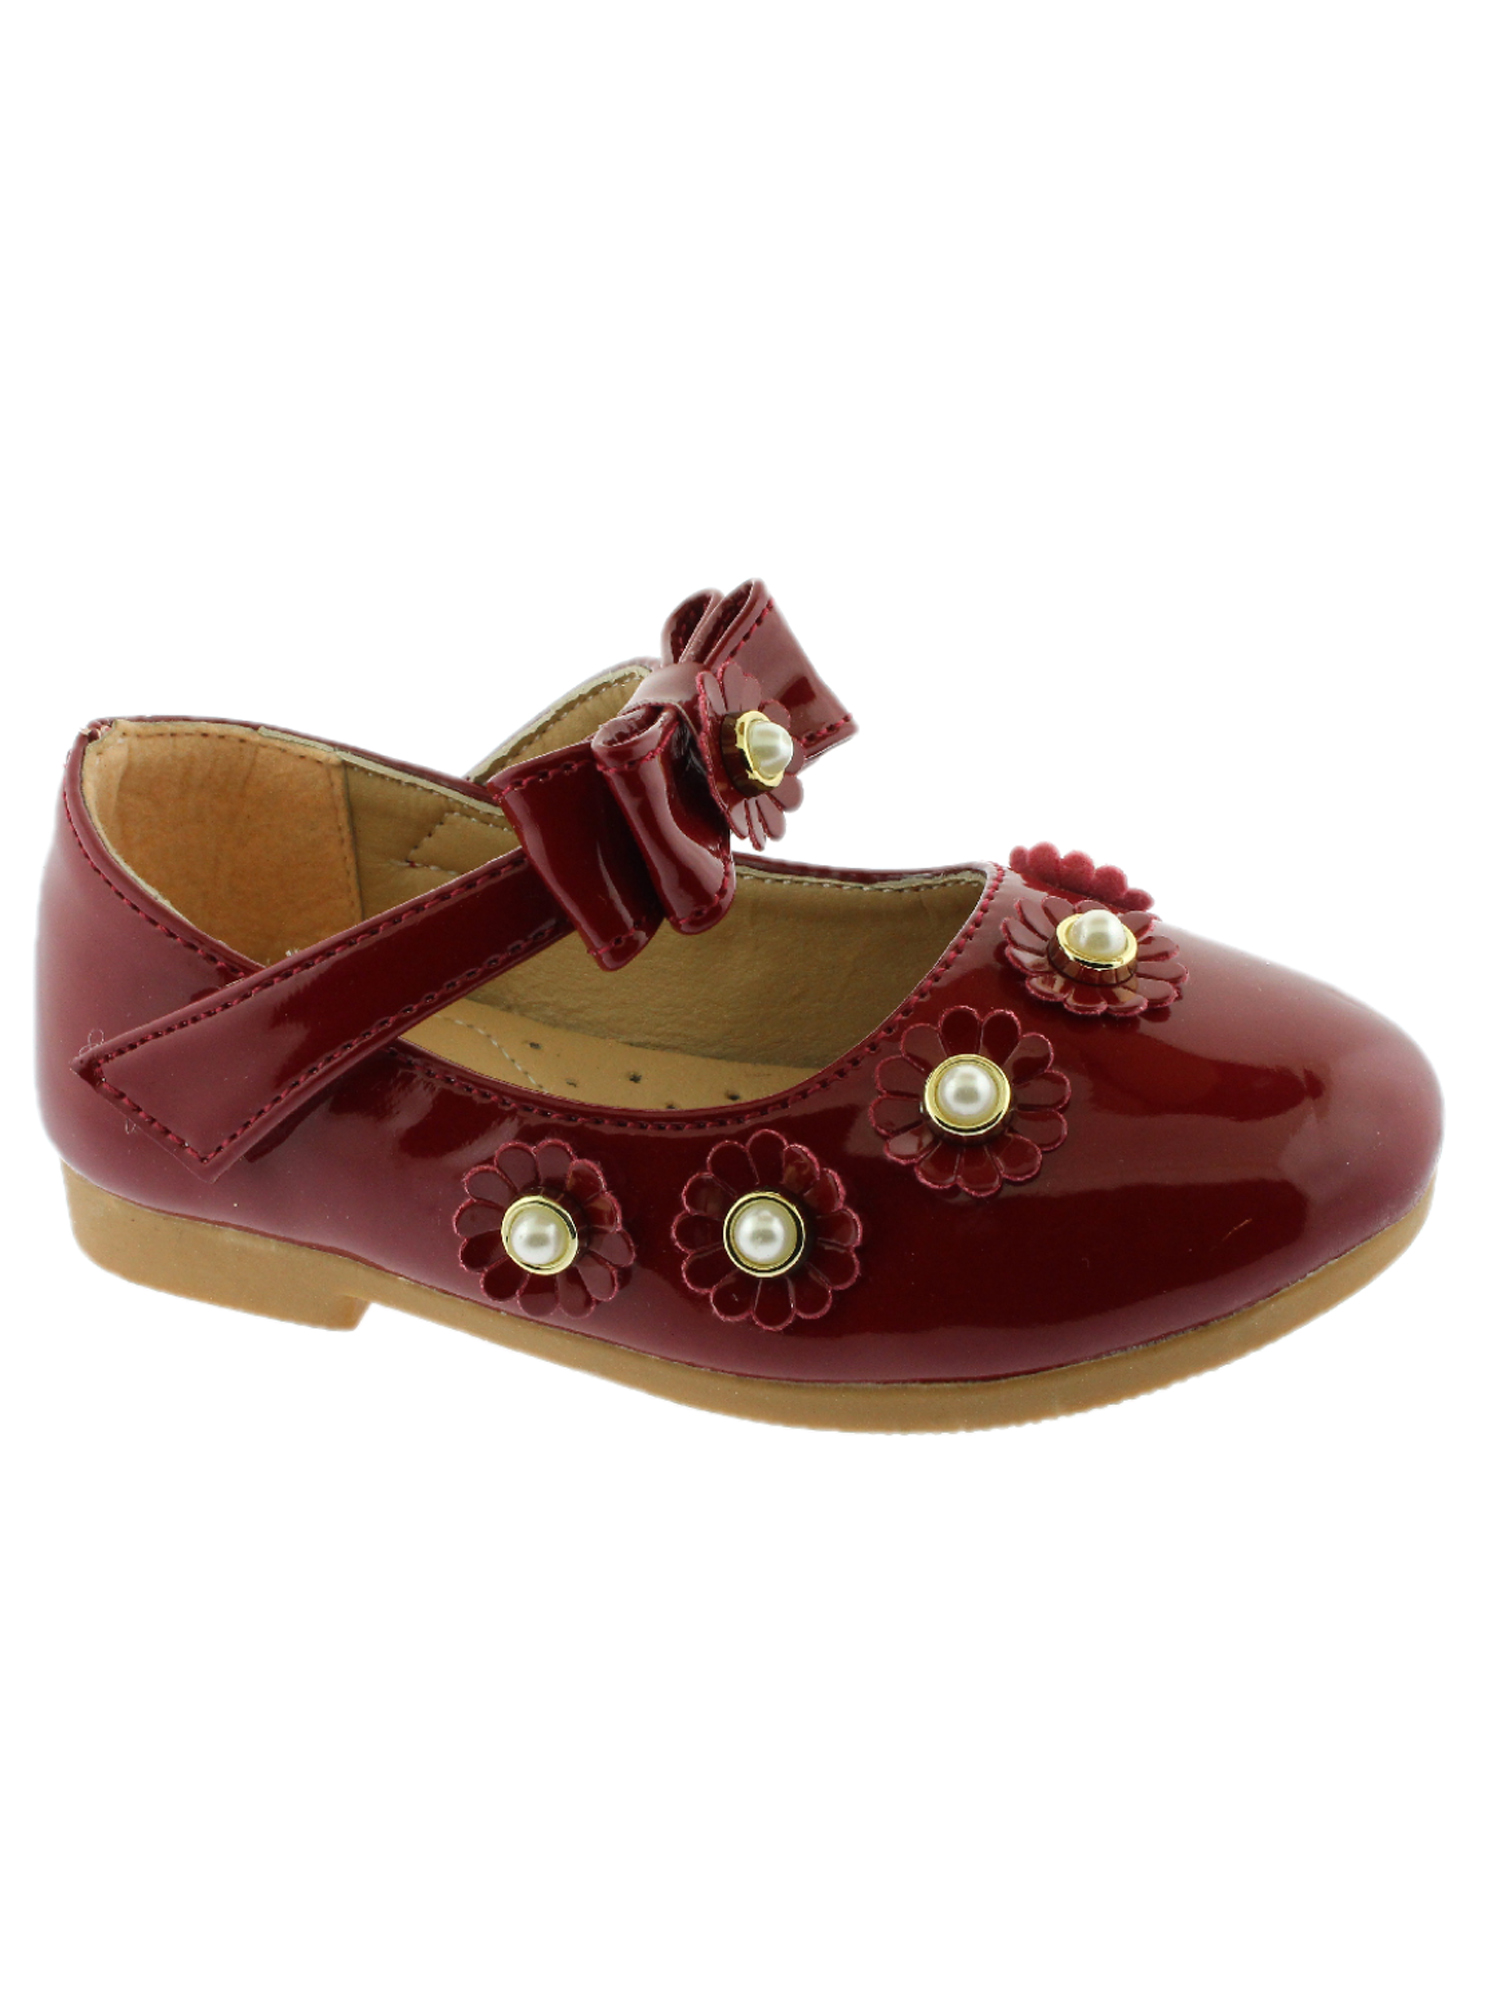 Kate Little Girls Red Flower Pearl Bow Strap Mary Jane Shoes